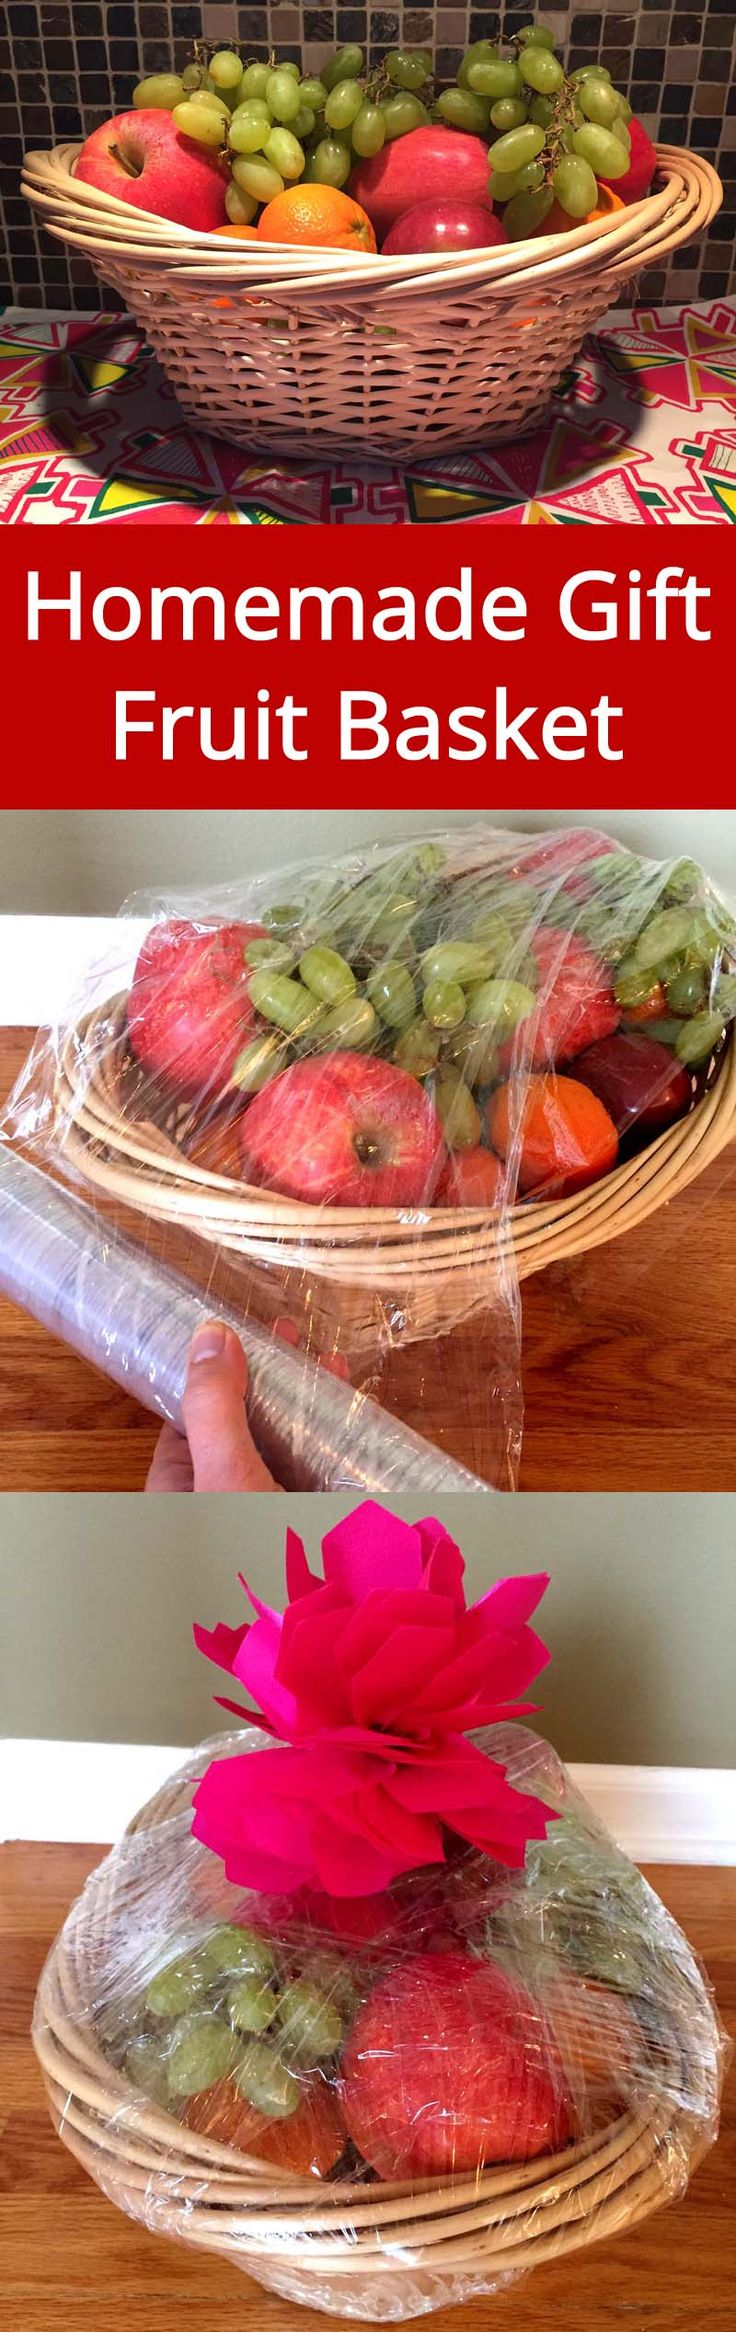 How To Make A Fruit Gift Basket